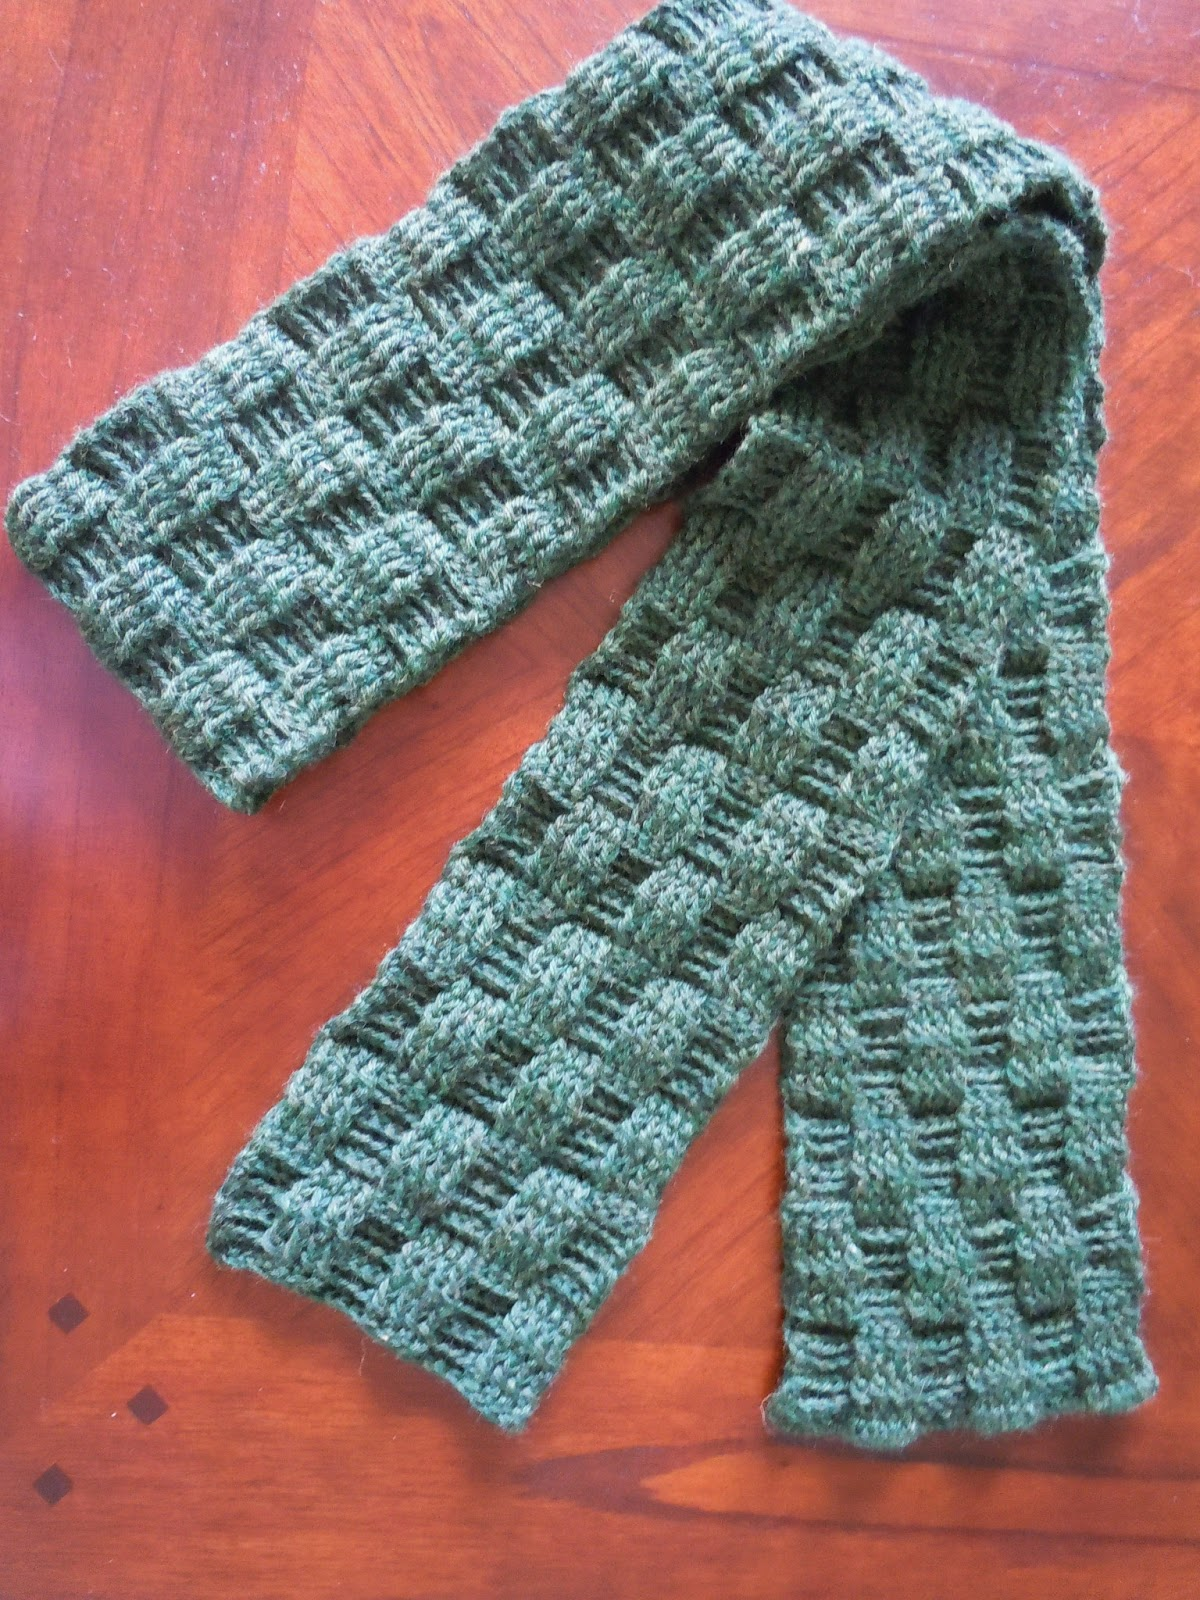 Crochet Stitches Good For Scarves : Illuminate Crochet: Mens Crochet and Basketweave Scarf